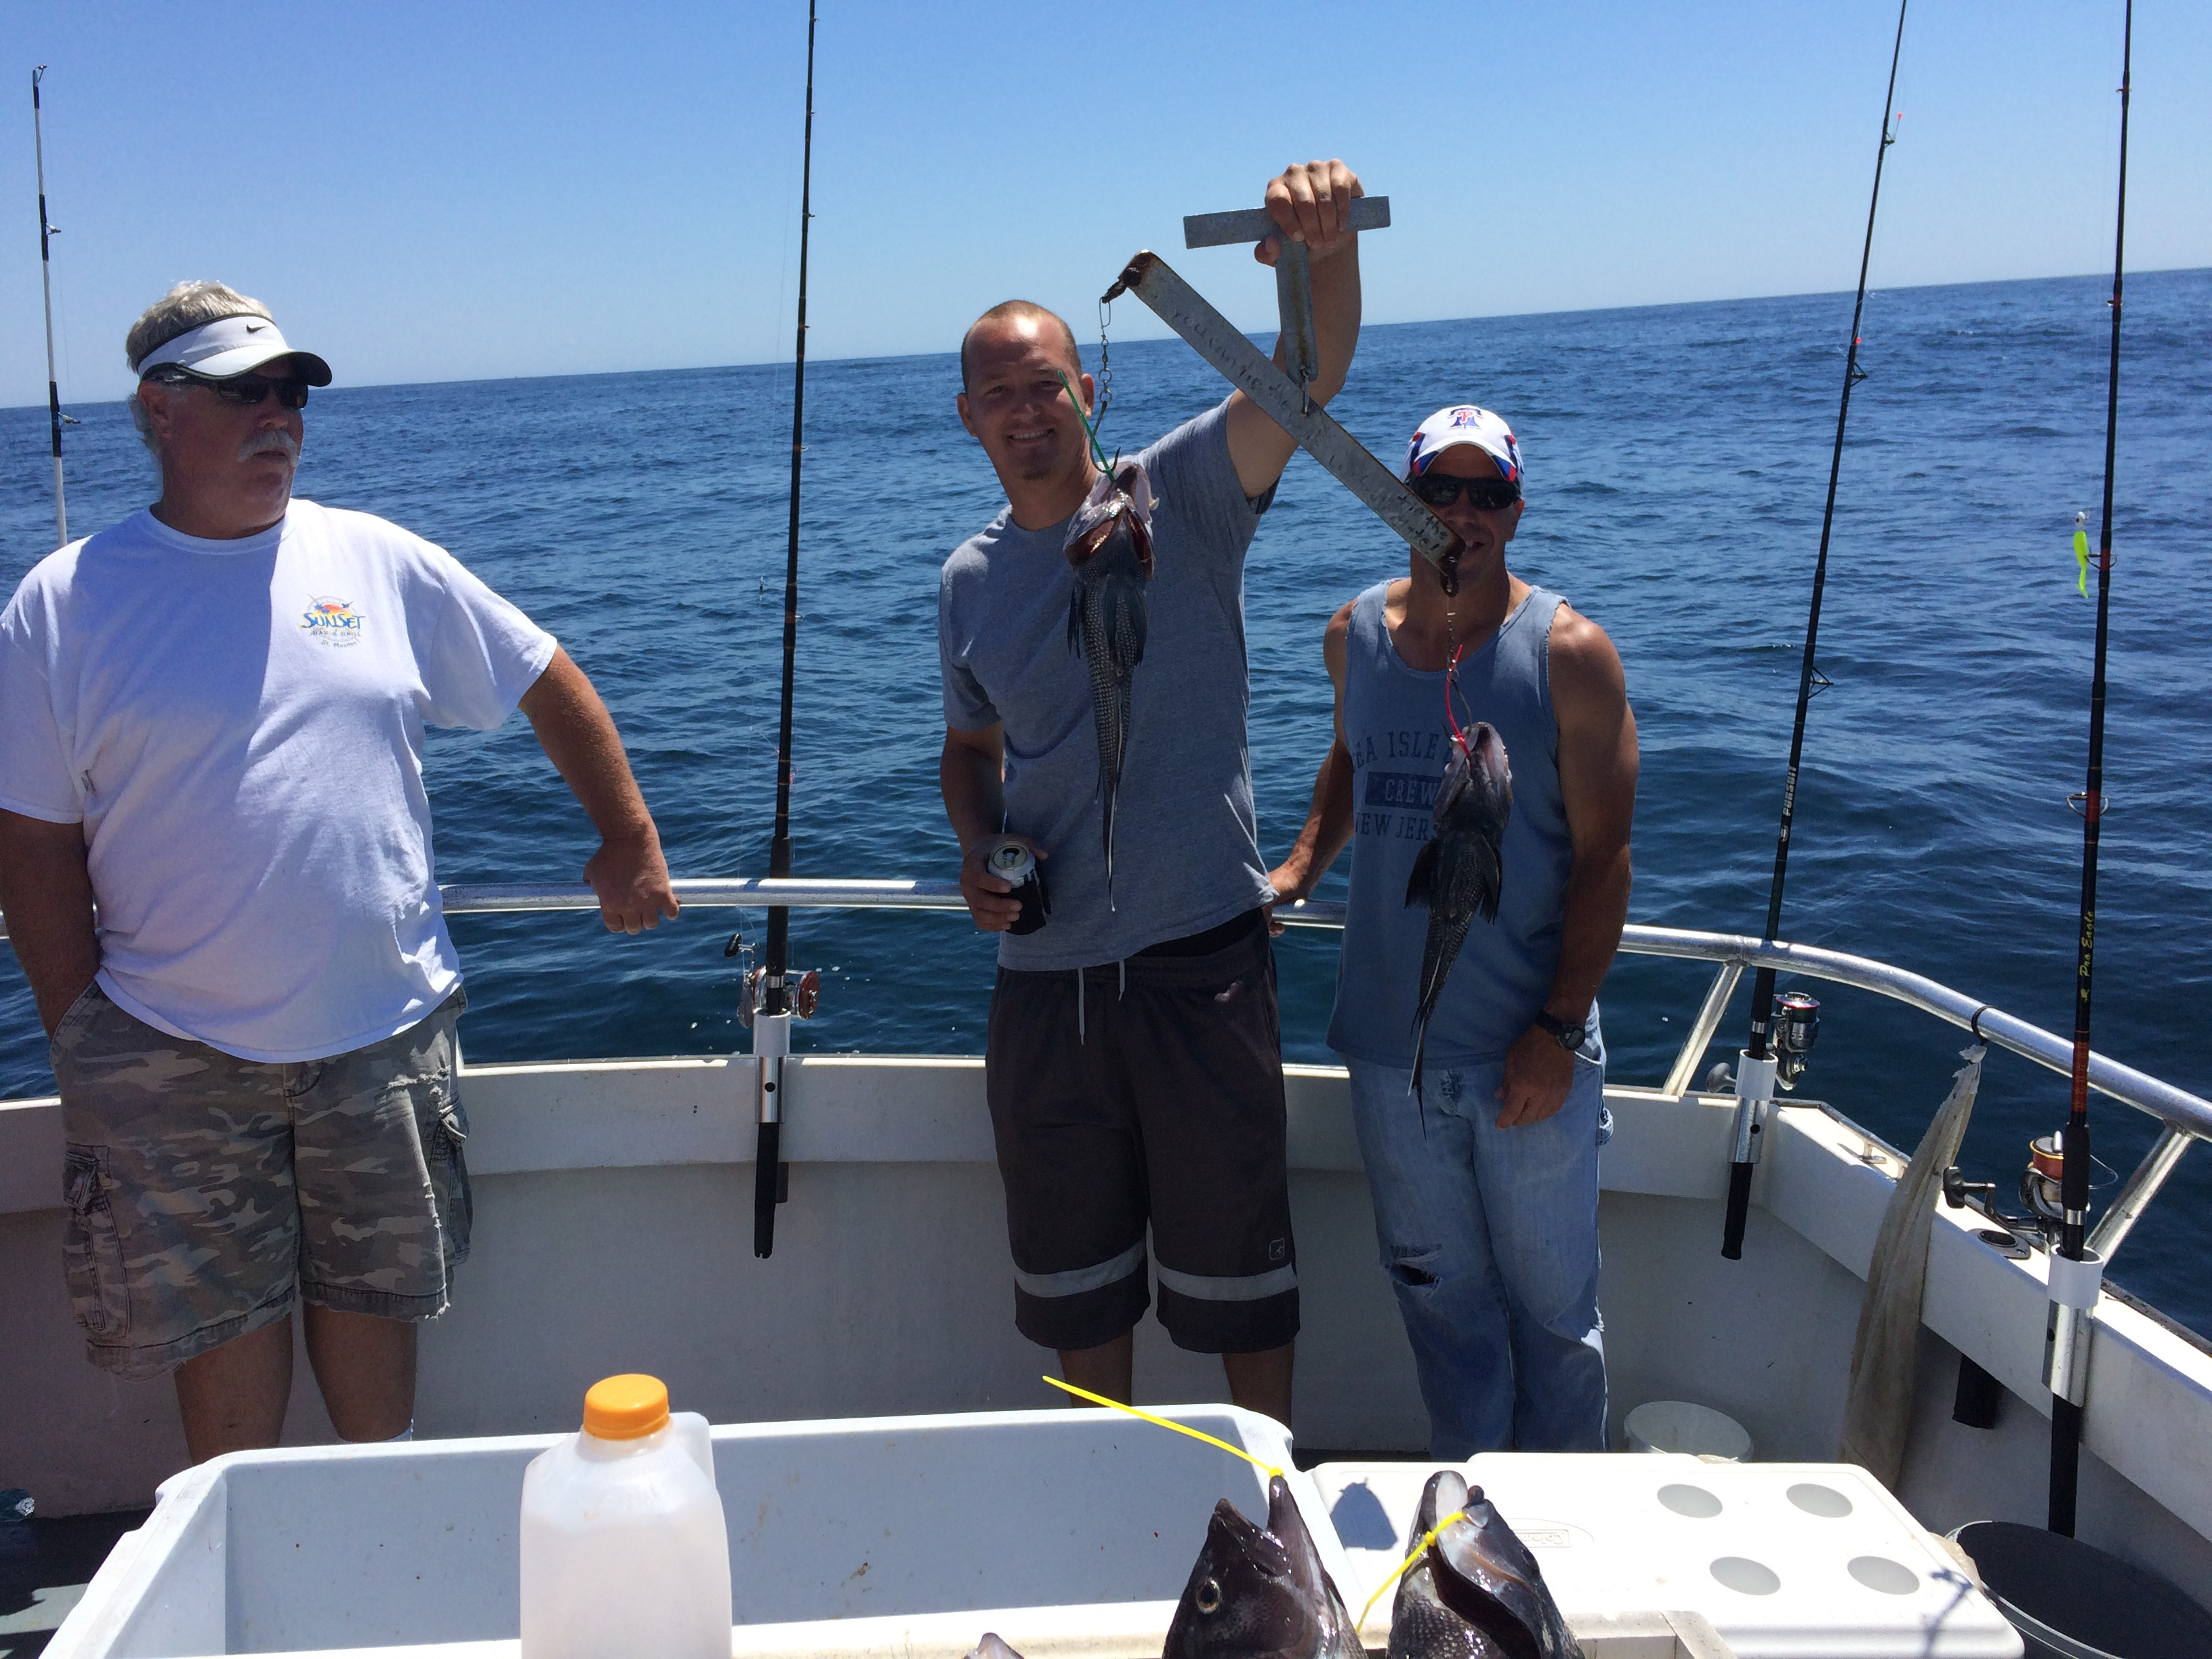 Last lady fishing nj deep sea fishing fishing charter for Fishing charters nj